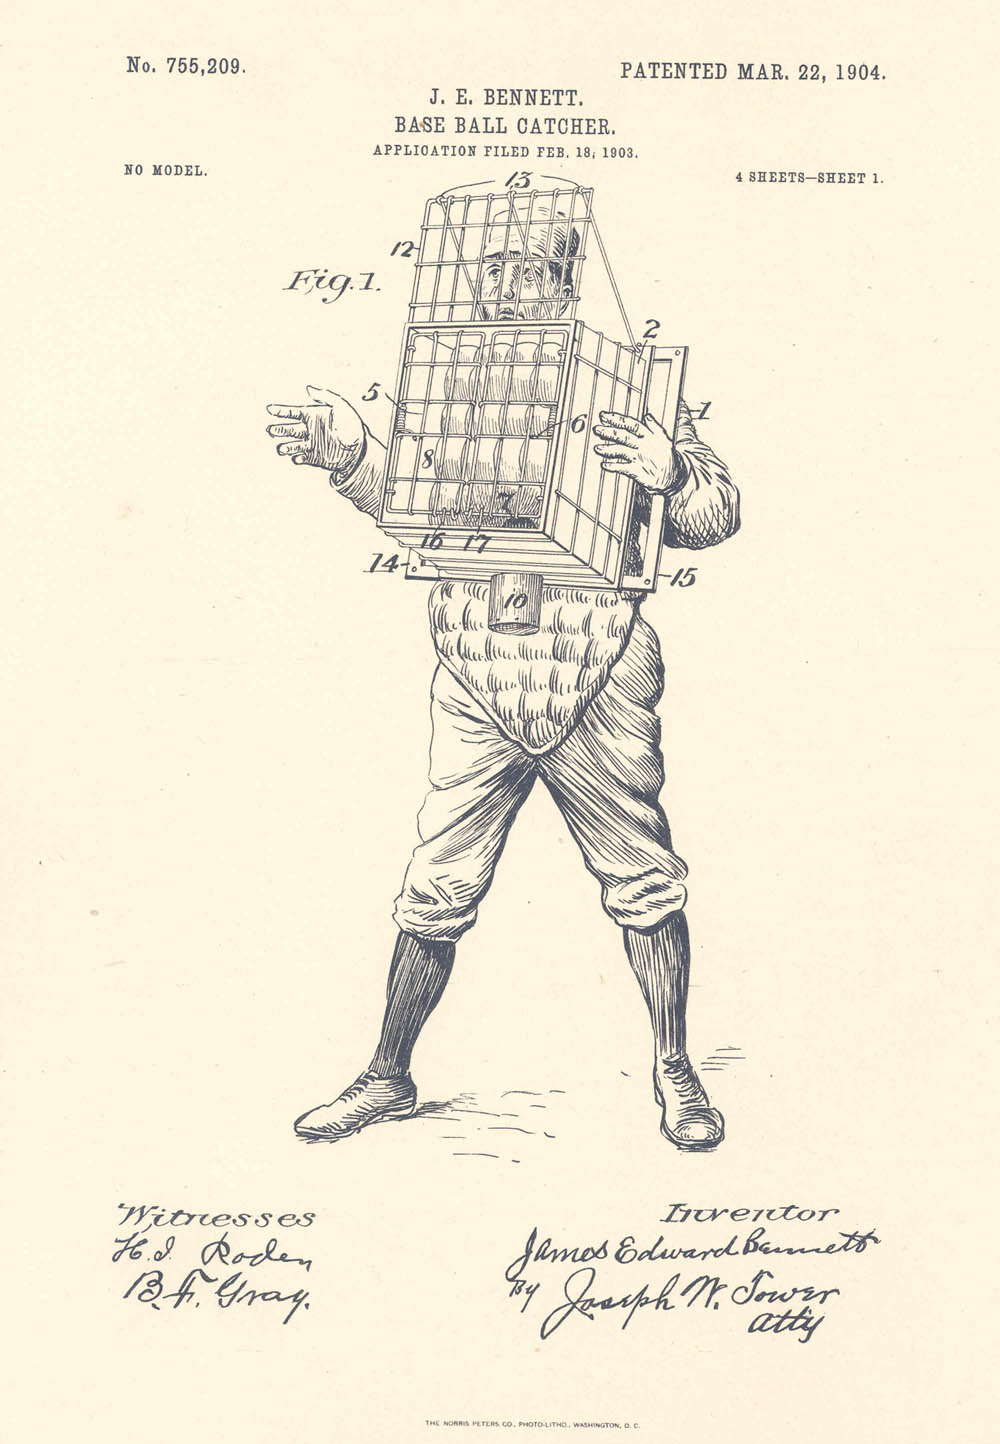 Patent for baseball catcher, 1904